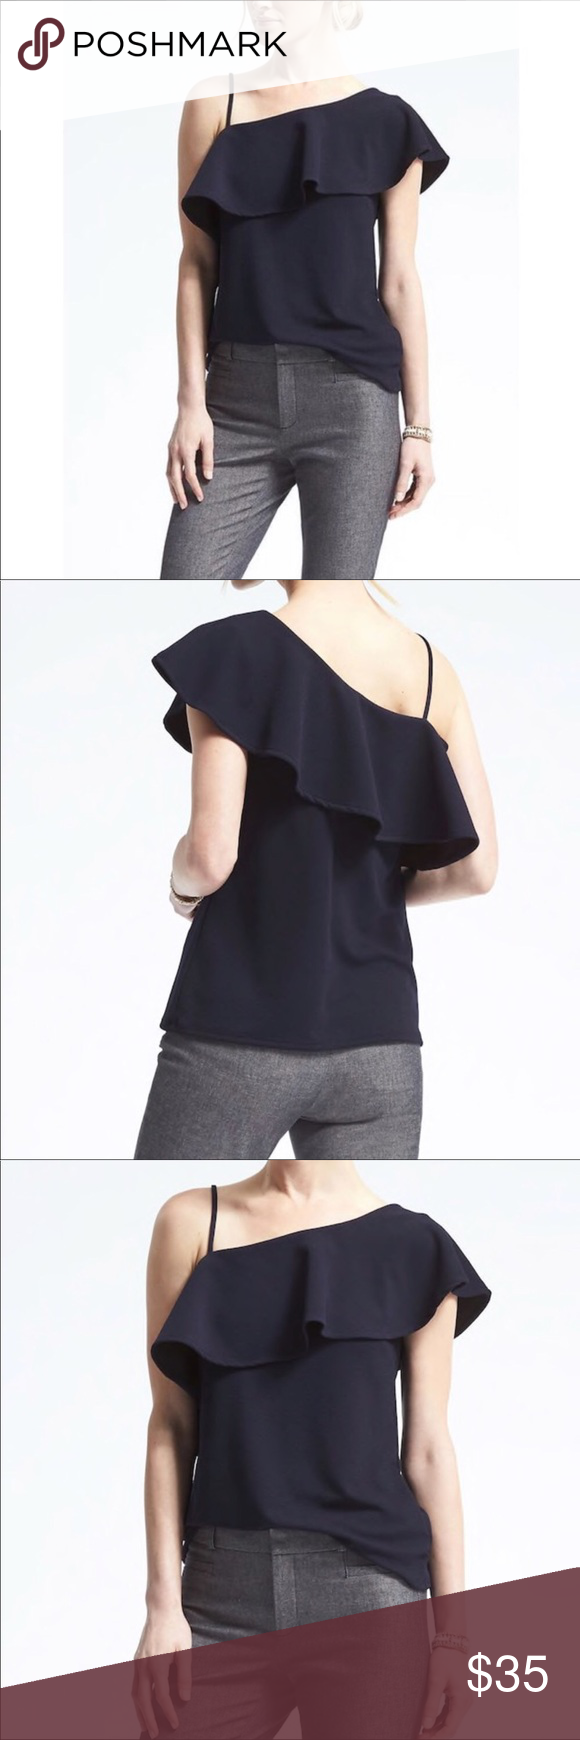 bb6f02f579f Banana Republic Crepe Off The Shoulder Top Banana Republic Crepe Off The  Shoulder Top Shirt has a beautiful off the shoulder design. With one strap  on the ...